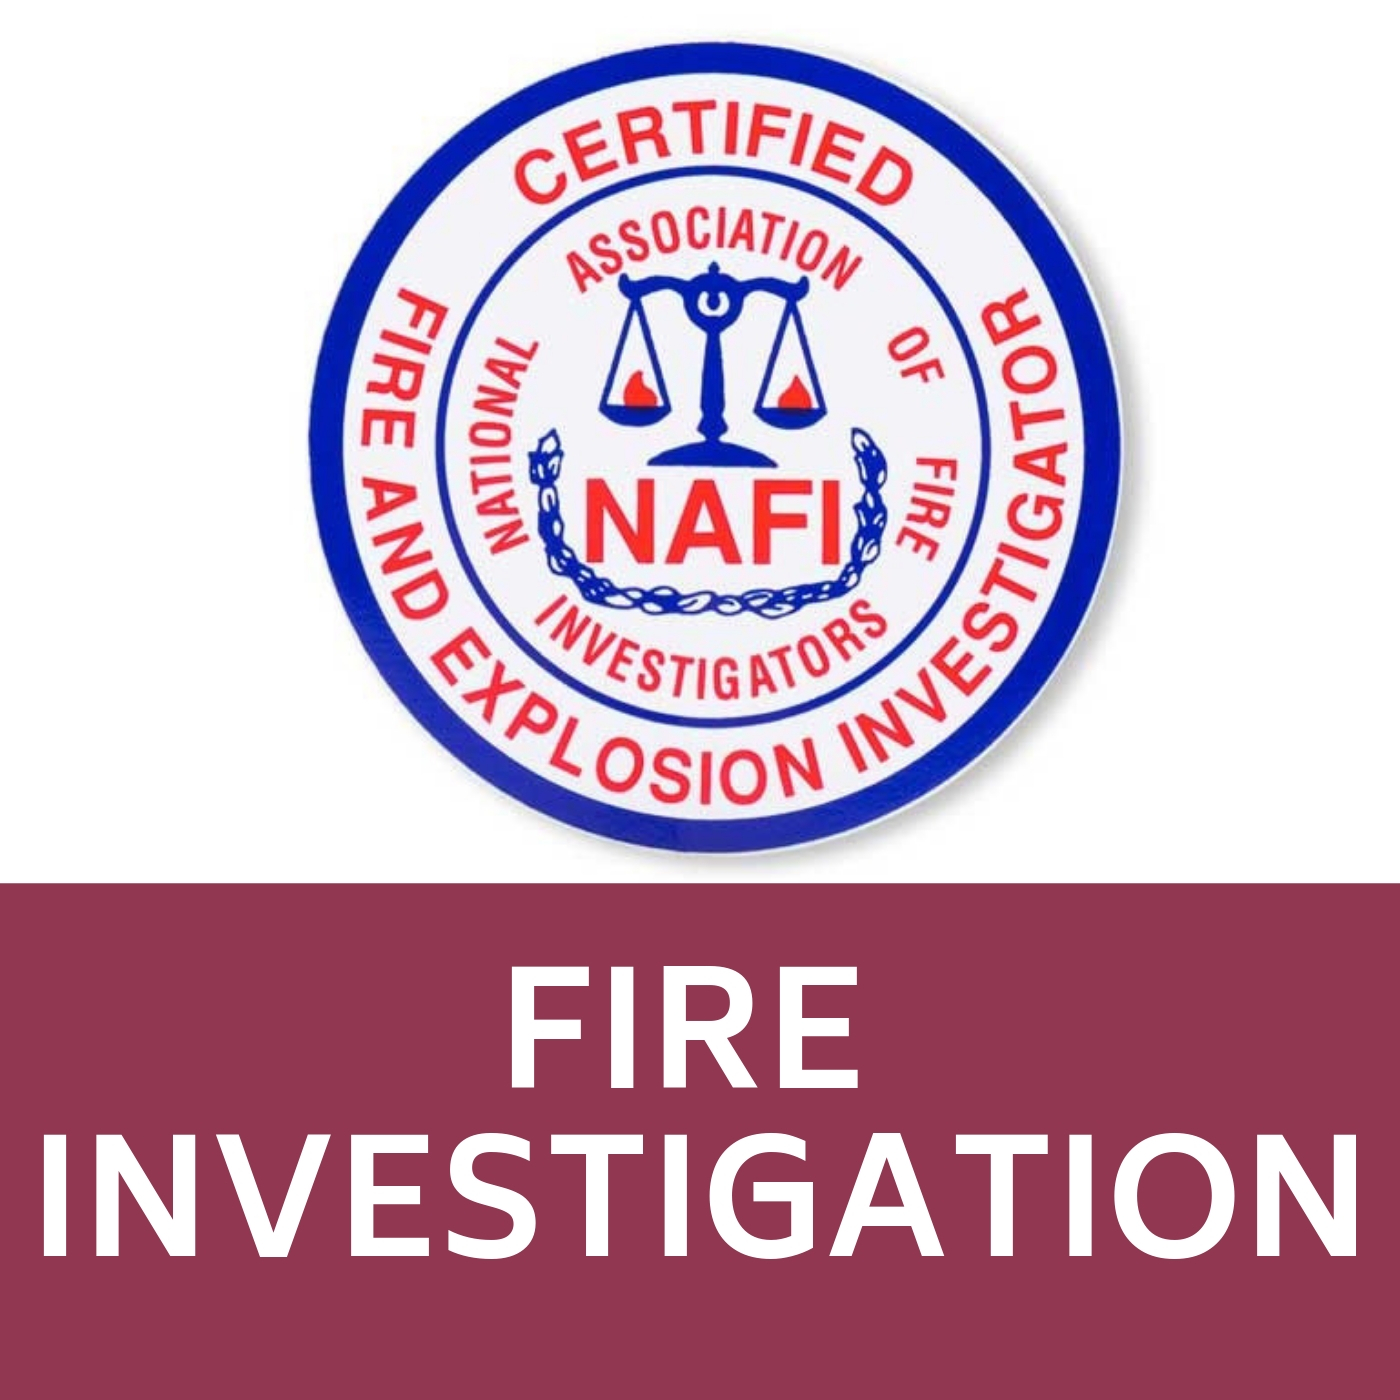 Fire and Explosion Investigator Seal that links to the Fire Investigation web-page.